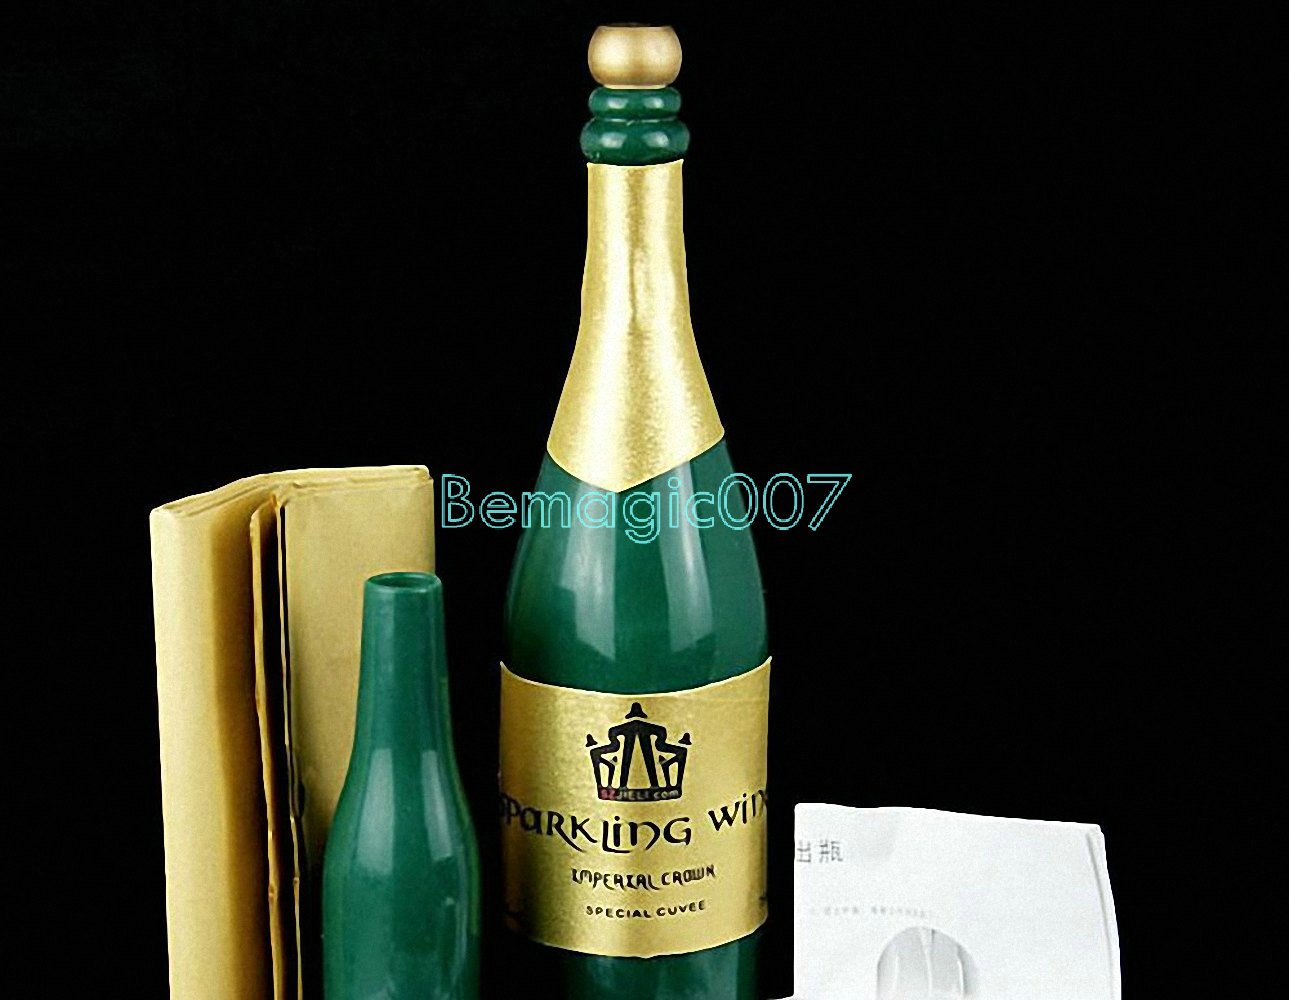 バニシングシャンパンボトル - LATEX 绿 B06WV829DB New Vanishing Vanishing Champagne Bottle - - LATEX Green -- ステージマジック B06WV829DB, AQUA LEGEND:b993b929 --- 6530c.xyz